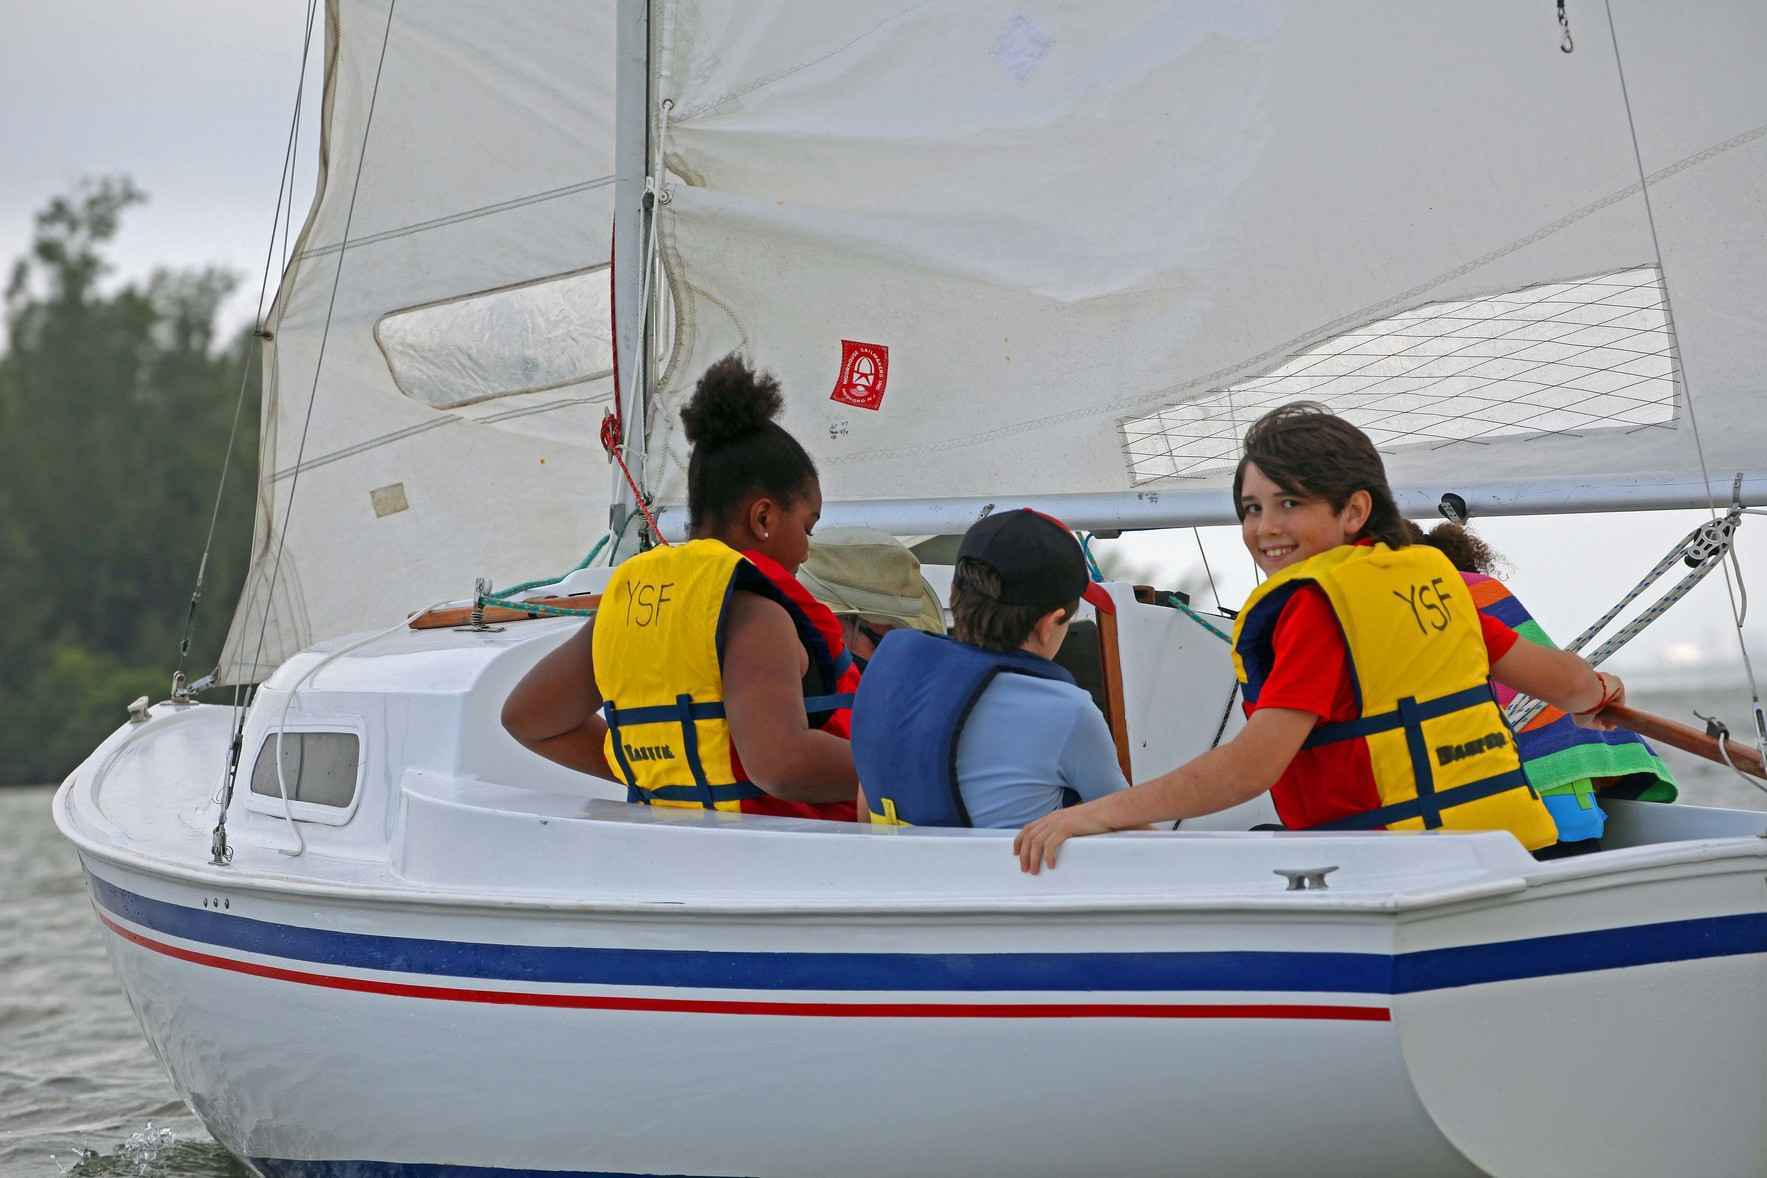 Donate now to help a child set sail on a new adventure image